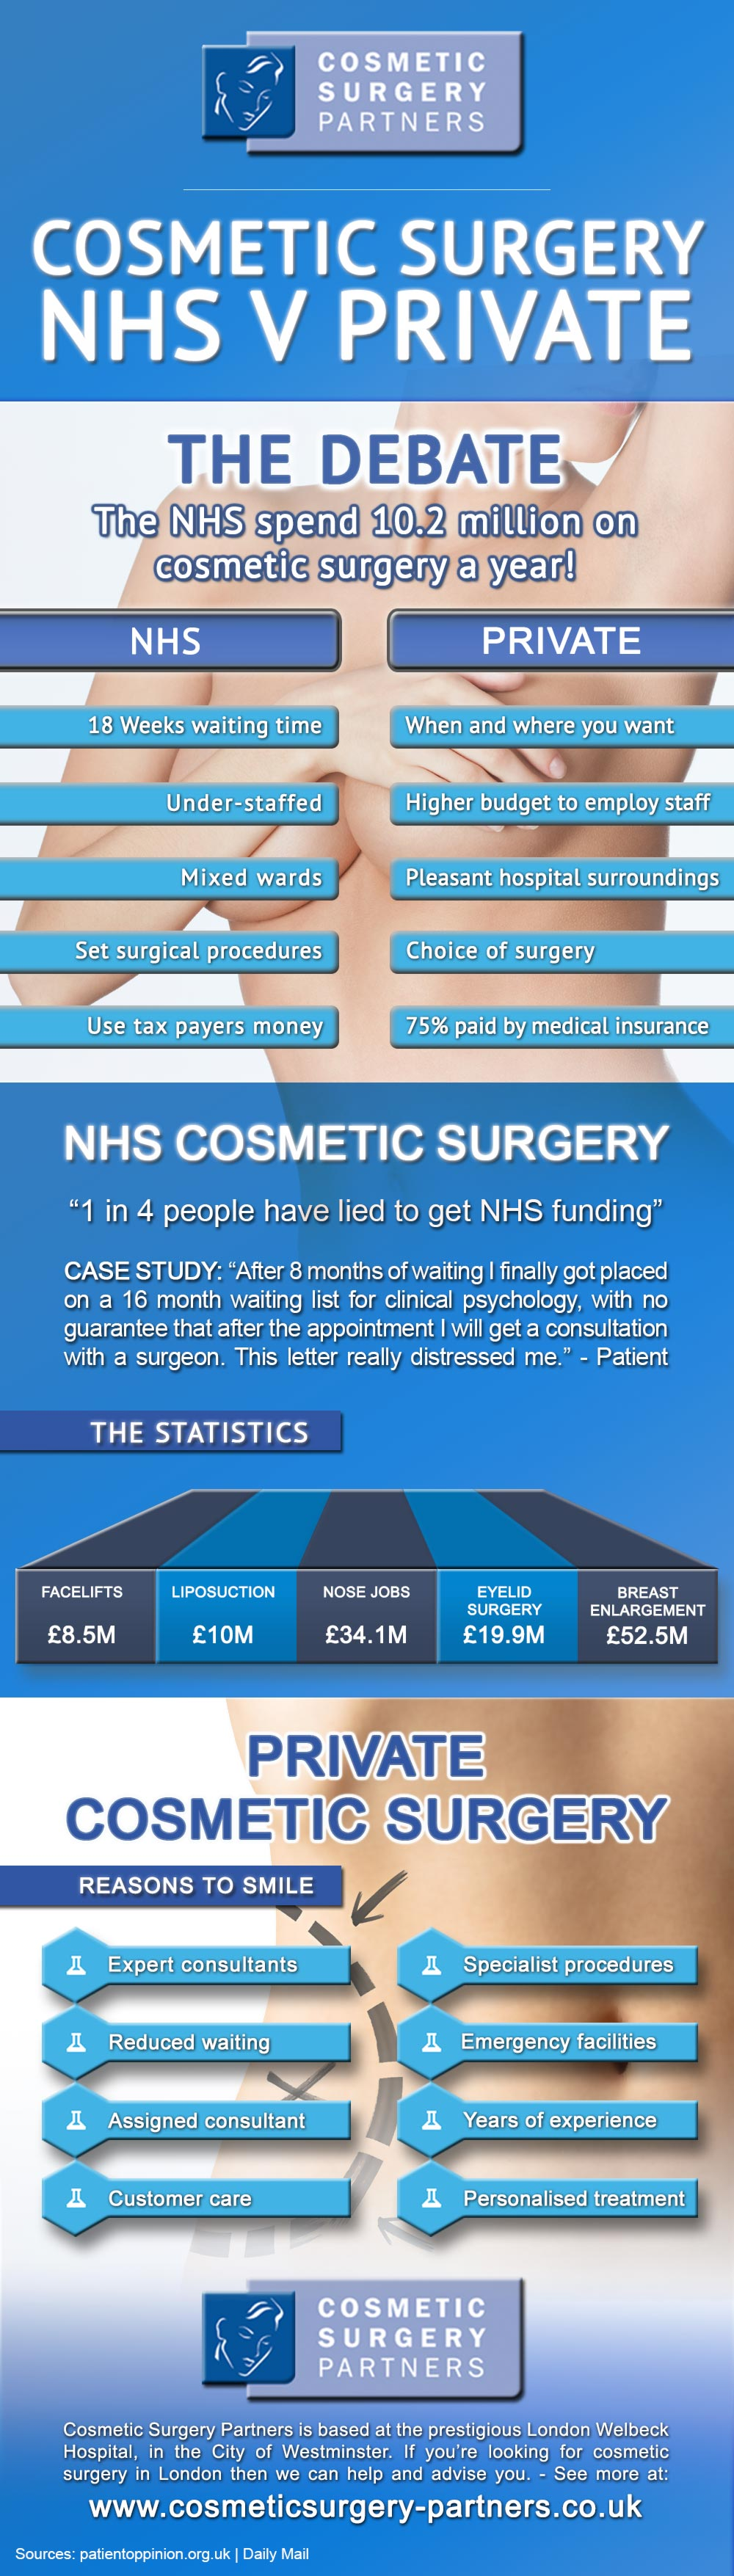 breast surgery NHS vs Private information